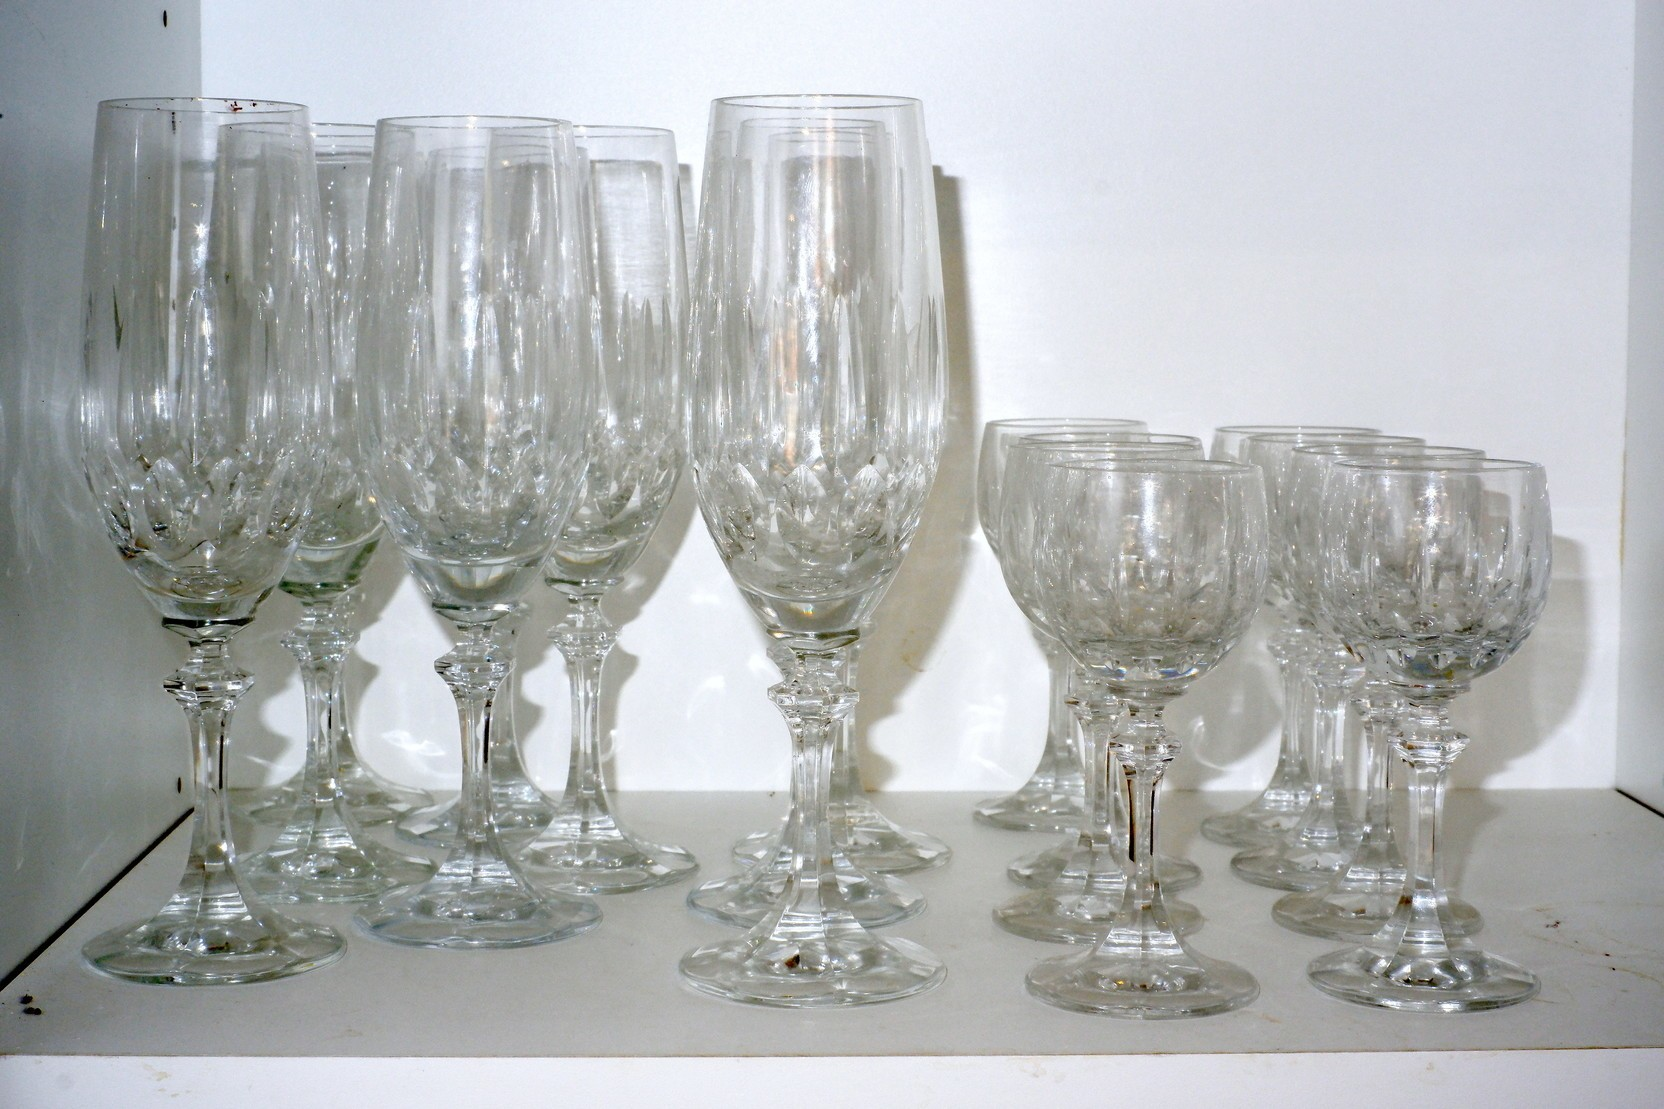 'Large Group of Stemmed Drinking Glasses'